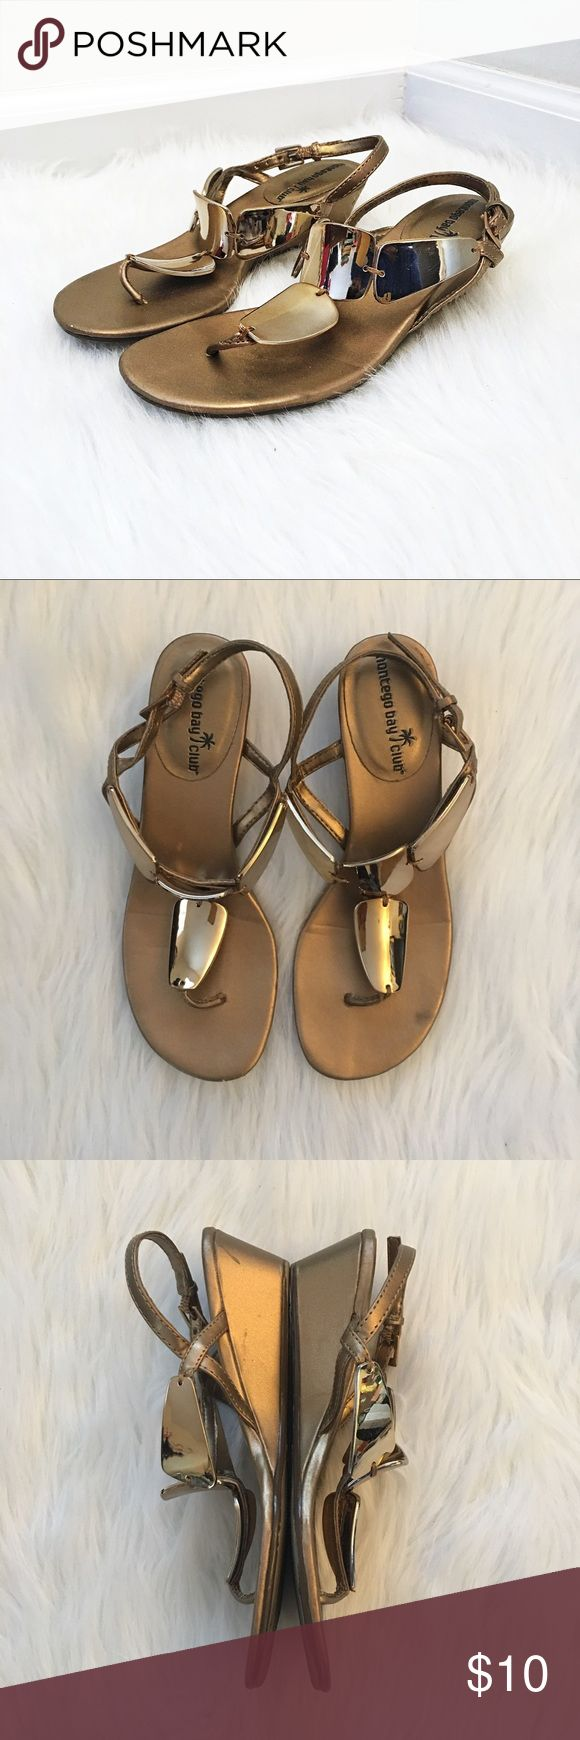 montego bay club small heeled mirror sandals In great condition. Only worn twice. Has been cleaned and disinfected.  Adorable and unique sandals with four mirrored panels and a small heel. Perfect for any warm weather.  Heels: 2 inches   Open to offers. Bundle and save on shipping! Montego Bay Club Shoes Sandals & Flip Flops